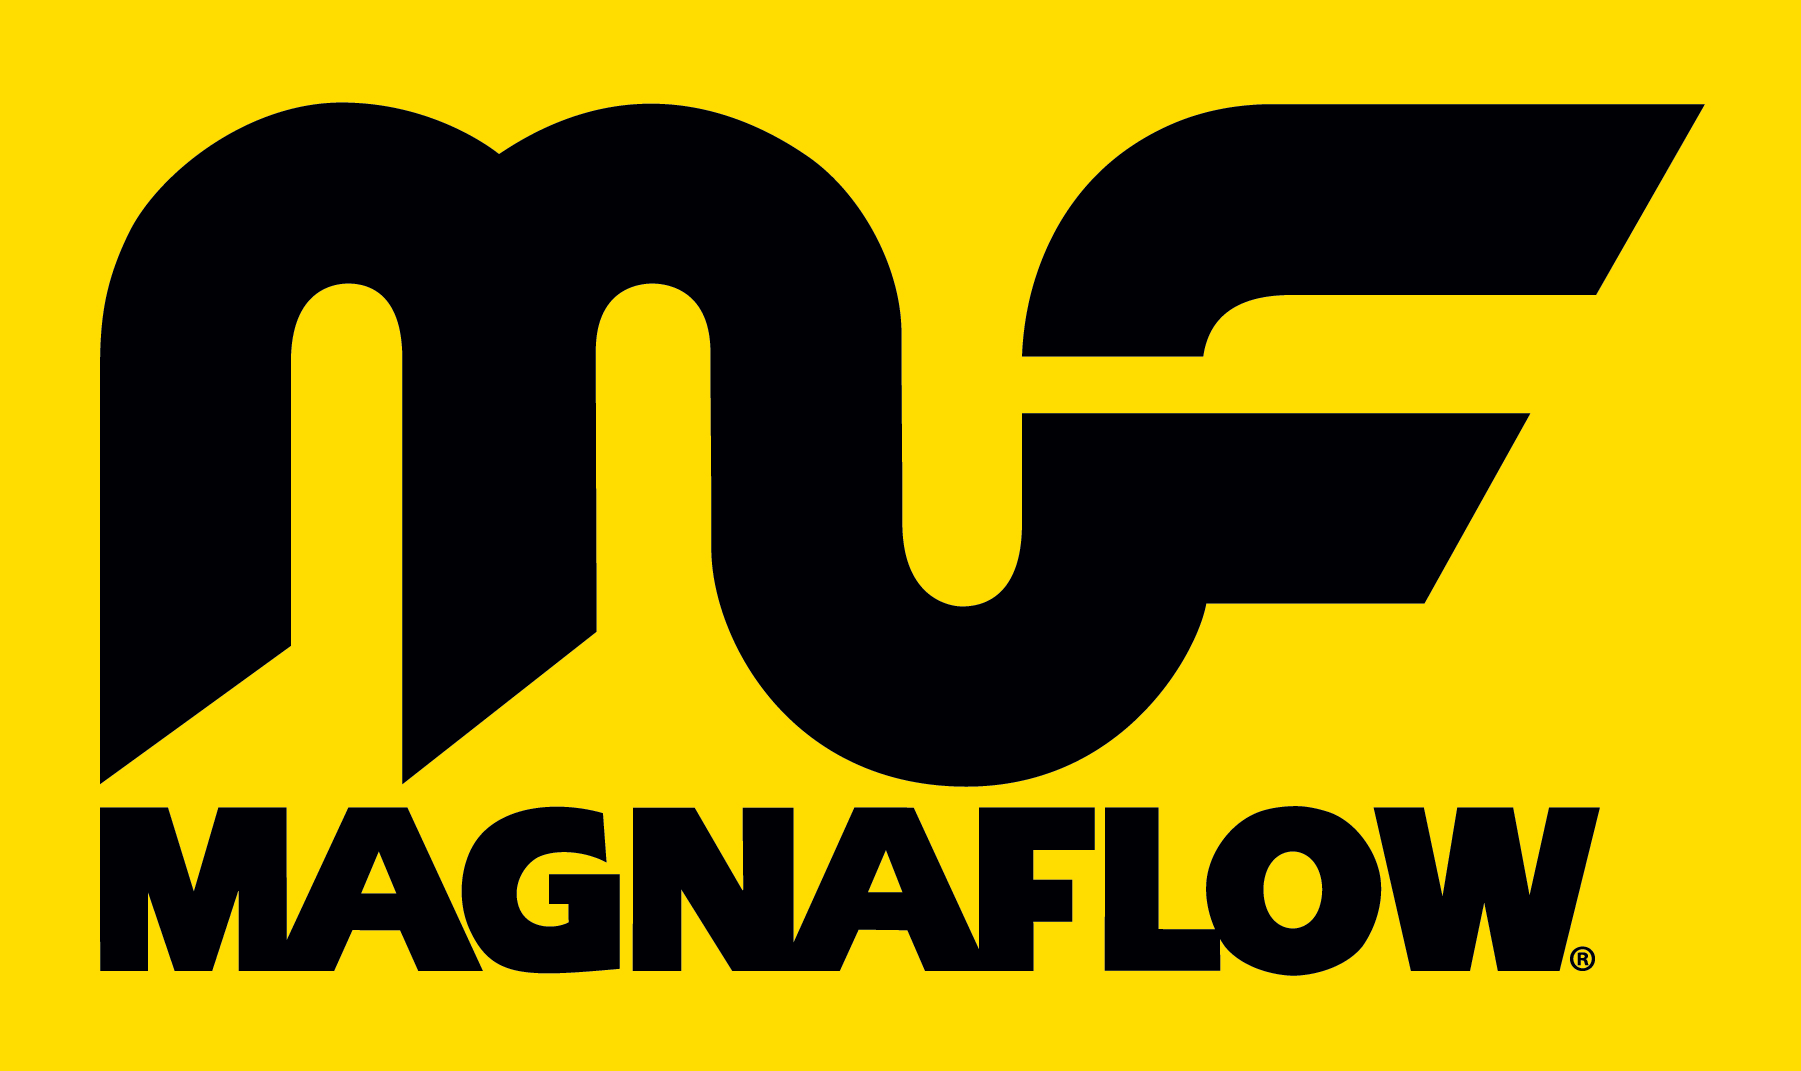 Magnaflow - Truck and Car Accessories Tallahassee